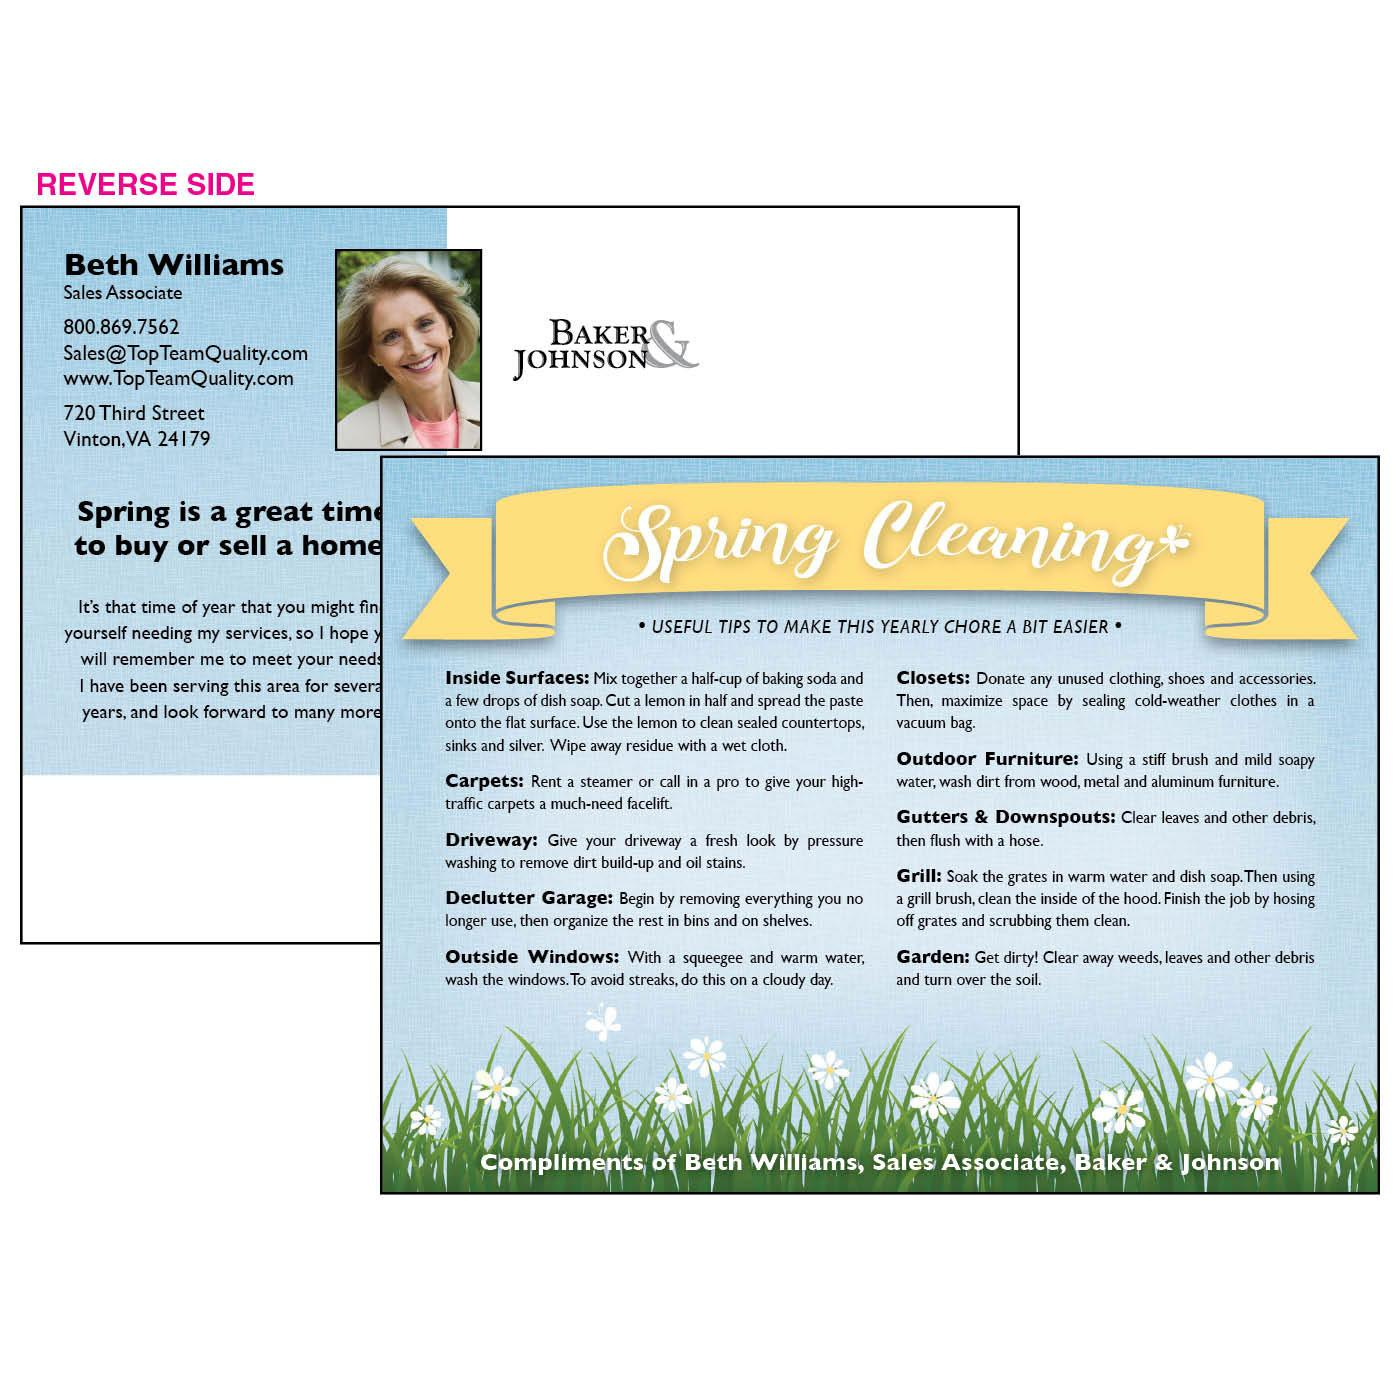 Postcard with spring cleaning tips